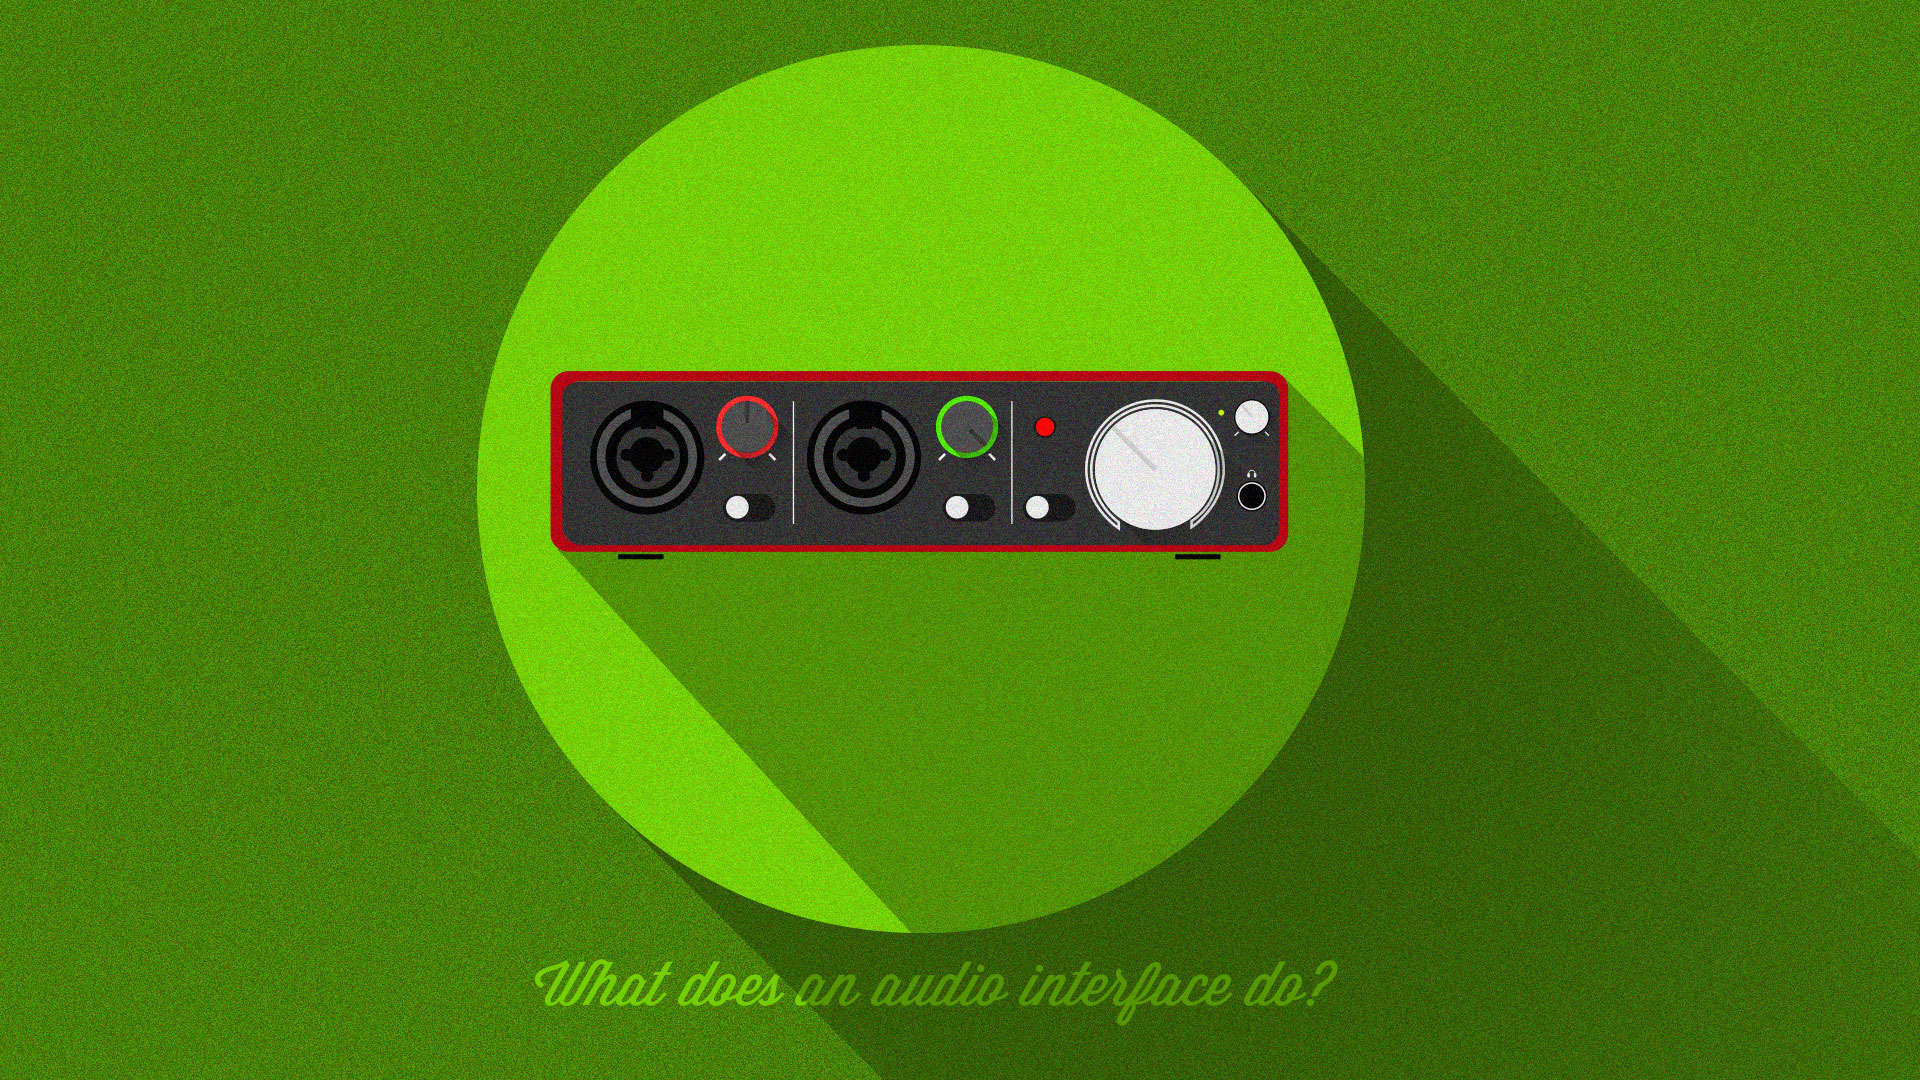 What does an audio interface do?